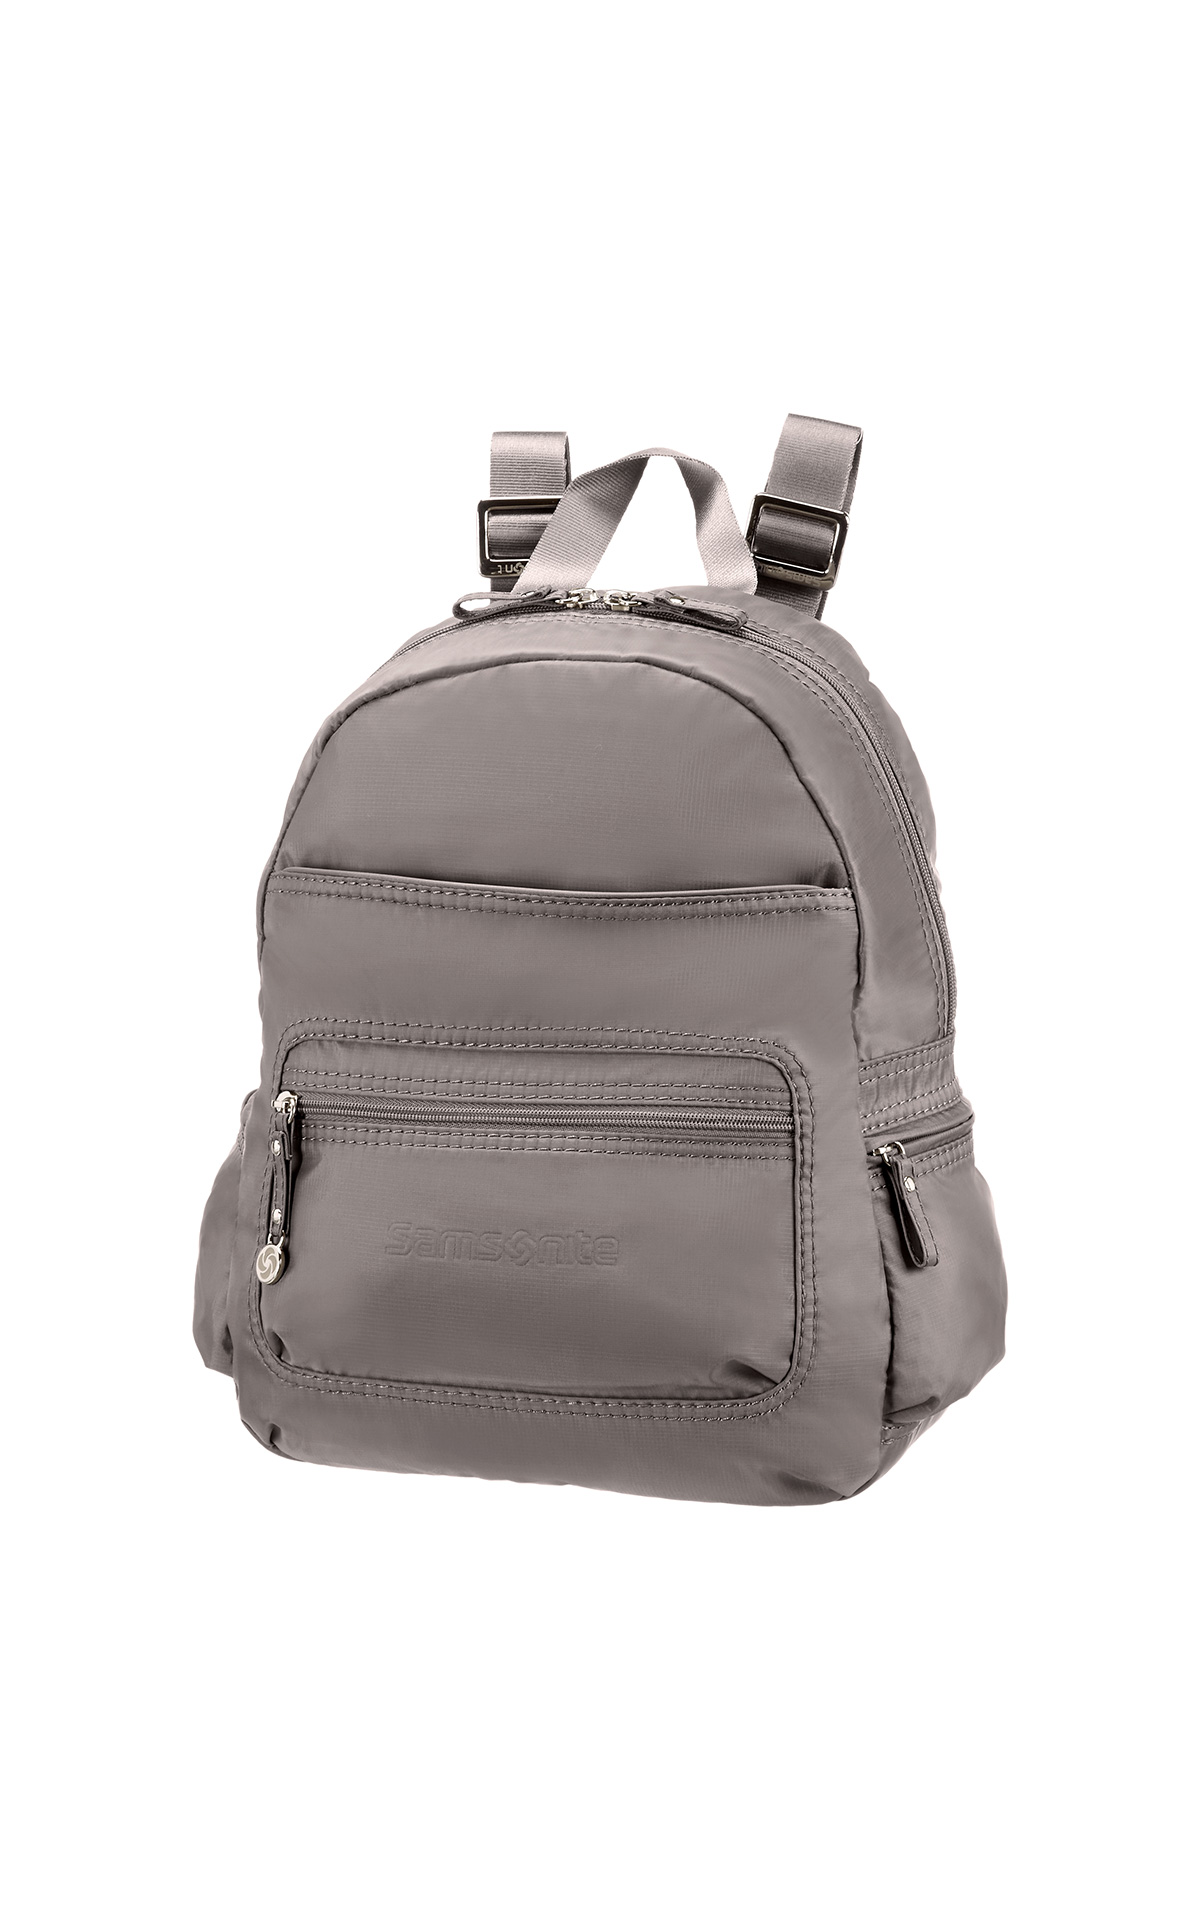 Samsonite grey backpack